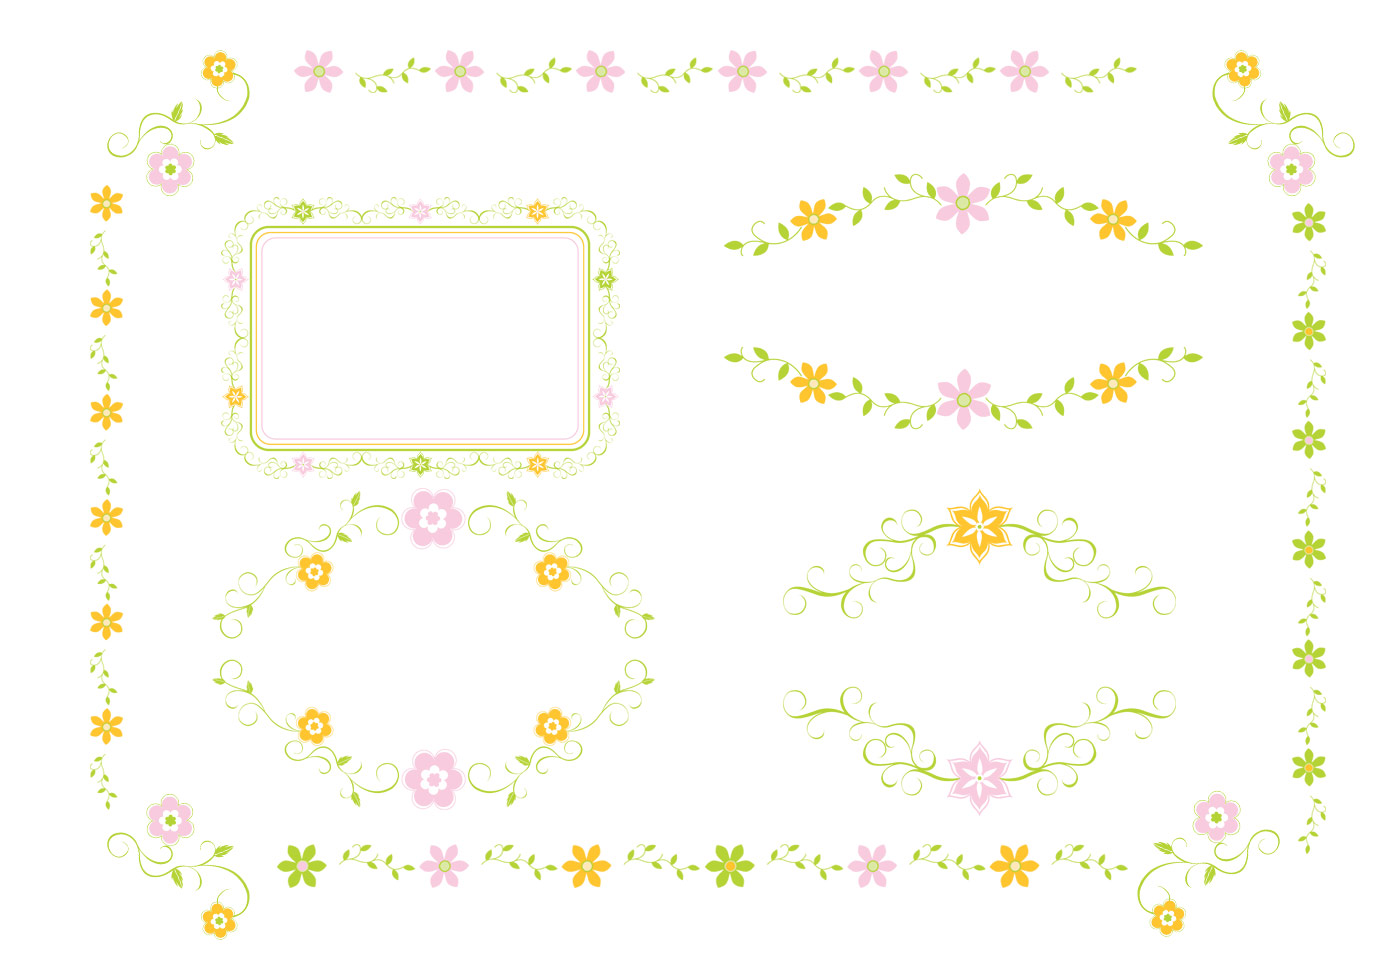 Floral Ornament Vector Free: Pink And Green Floral Ornament Vector Pack